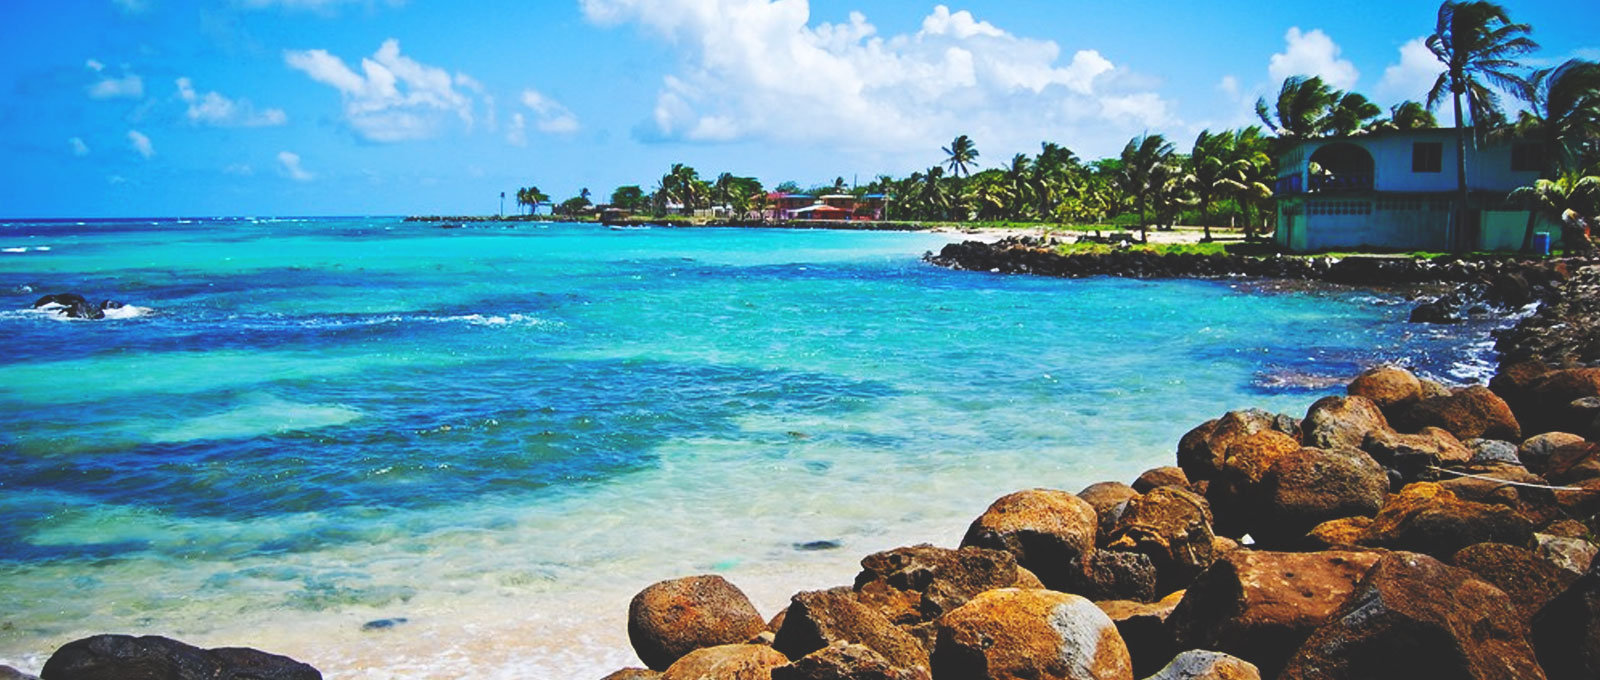 The Corn Islands, jewels of the Caribbean